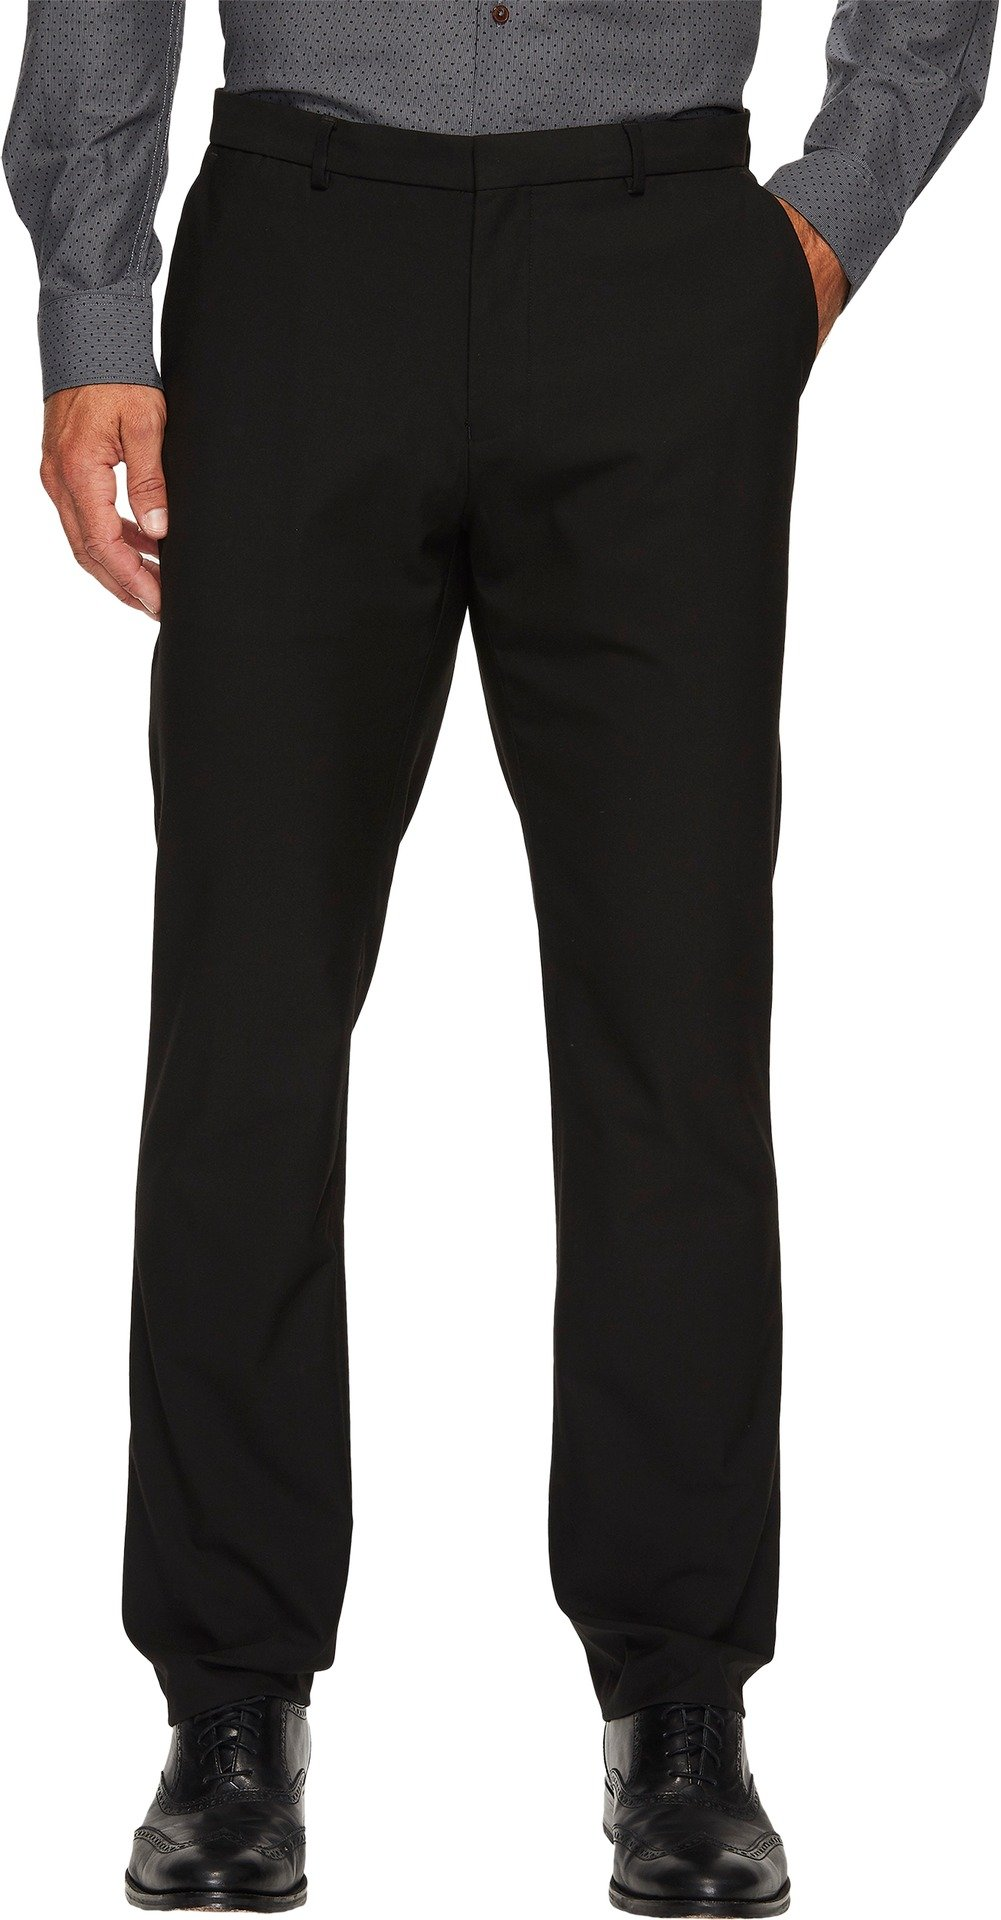 Calvin Klein Men's Infinite Slim Fit Trouser Suit Pant 4-Way Stretch, Black, 28W 30L